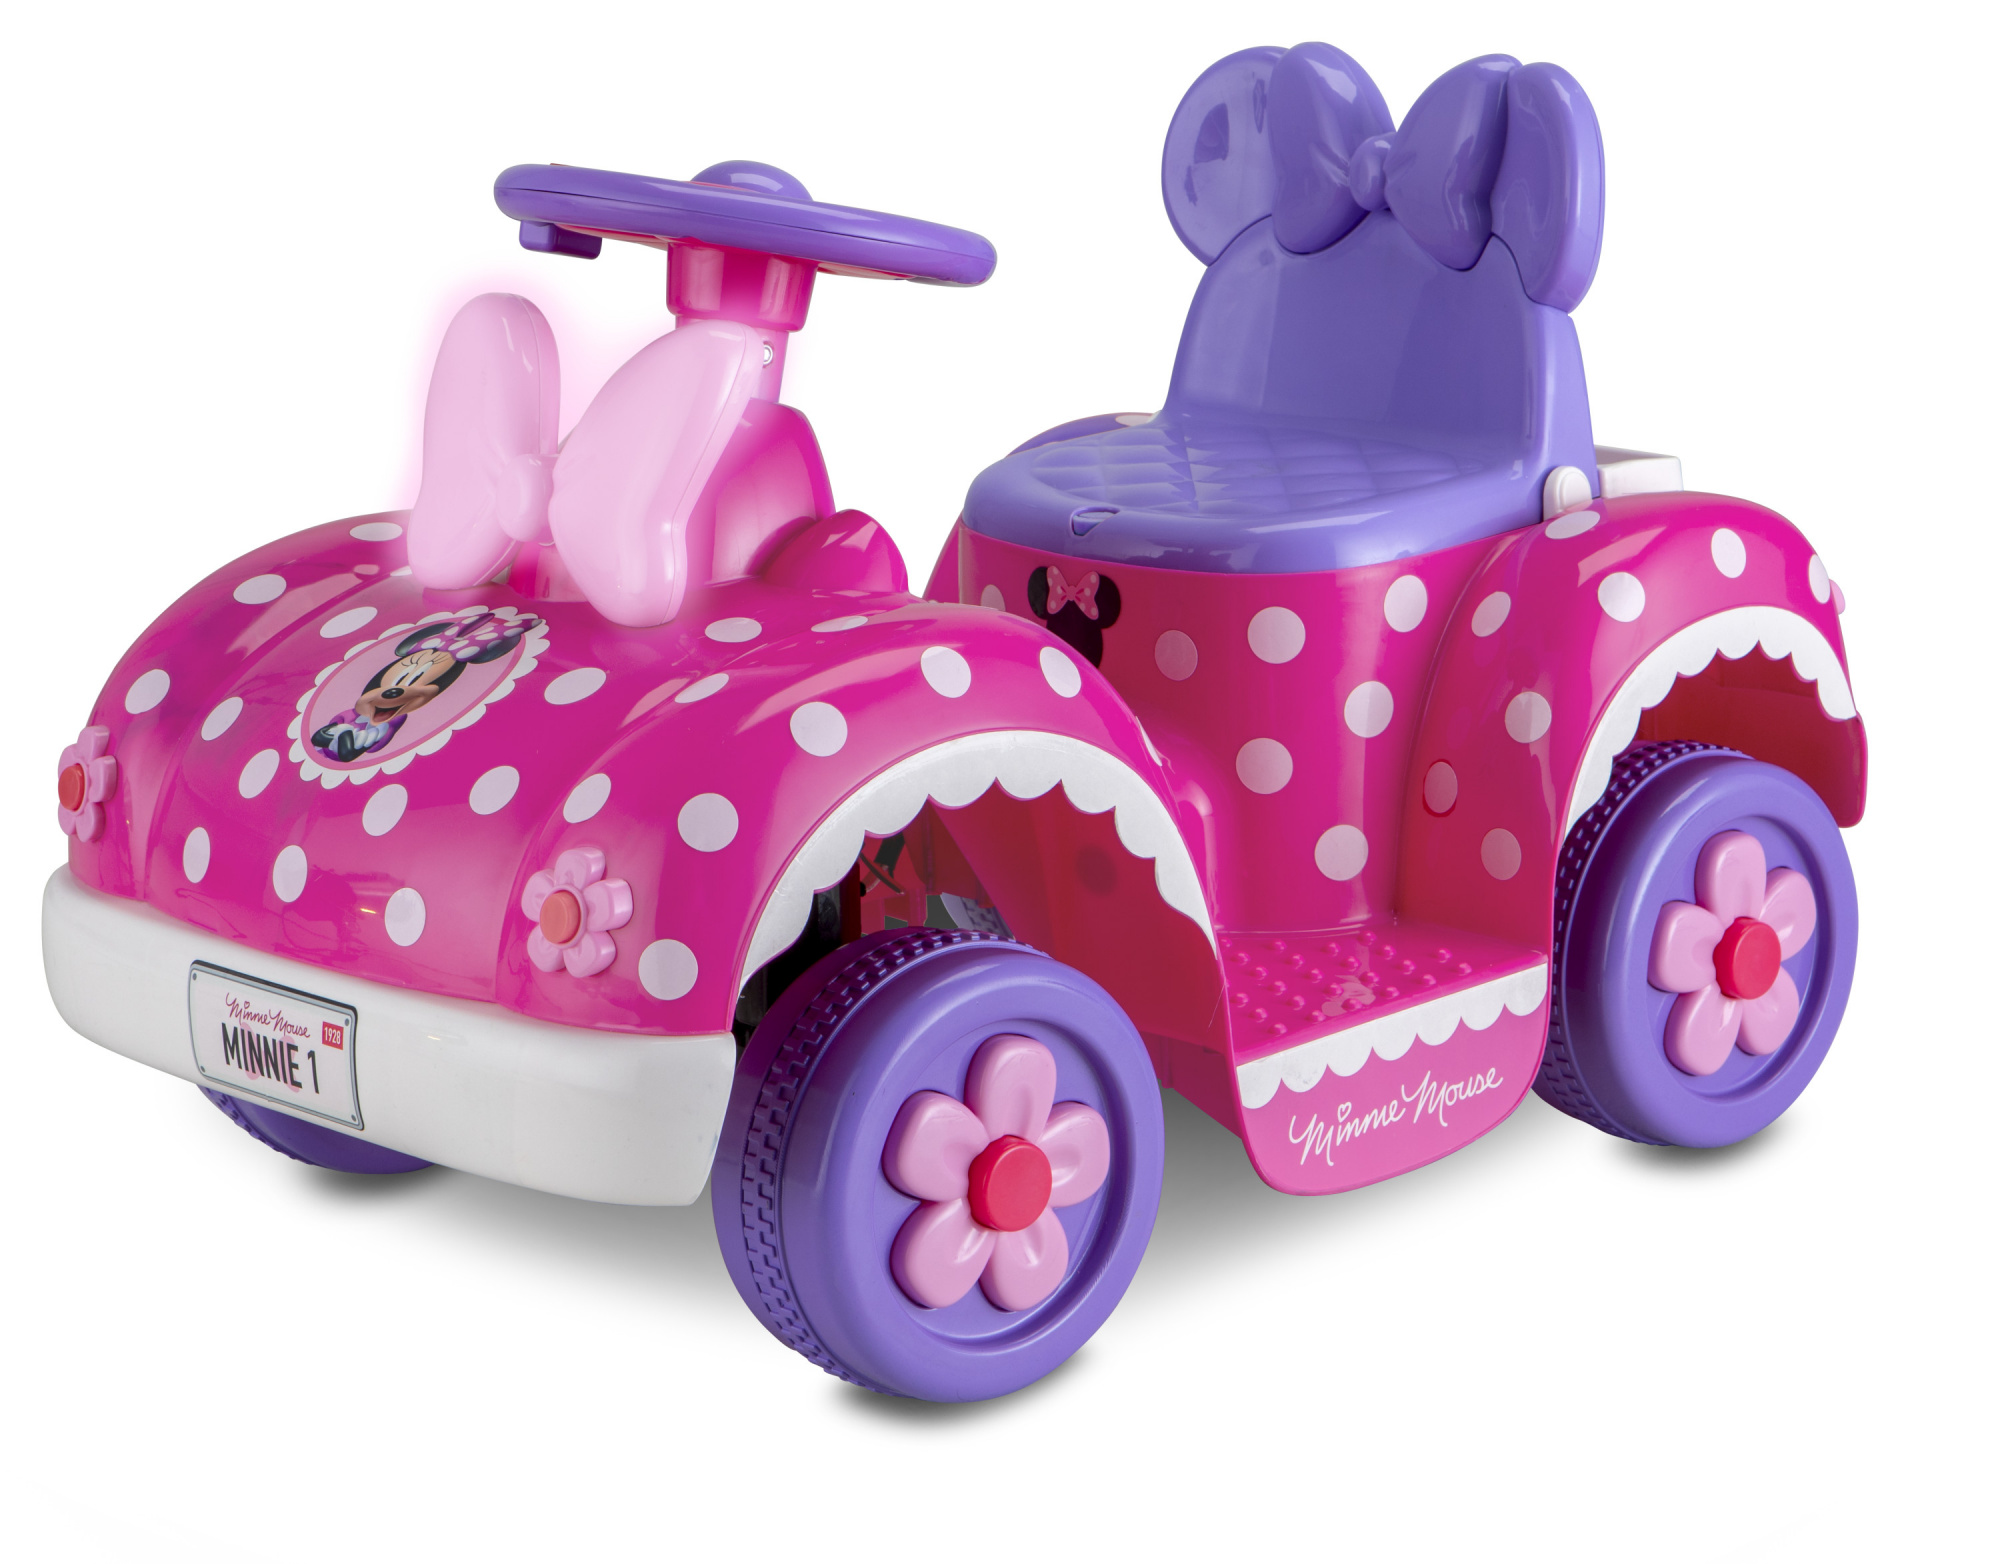 Disney S Minnie Mouse Toddler Quad 6 Volt Ride On Toy By Kid Trax By Kid Trax Disney Minnie Friends Minnie Happy Helpers Shop Online For Toys In New Zealand